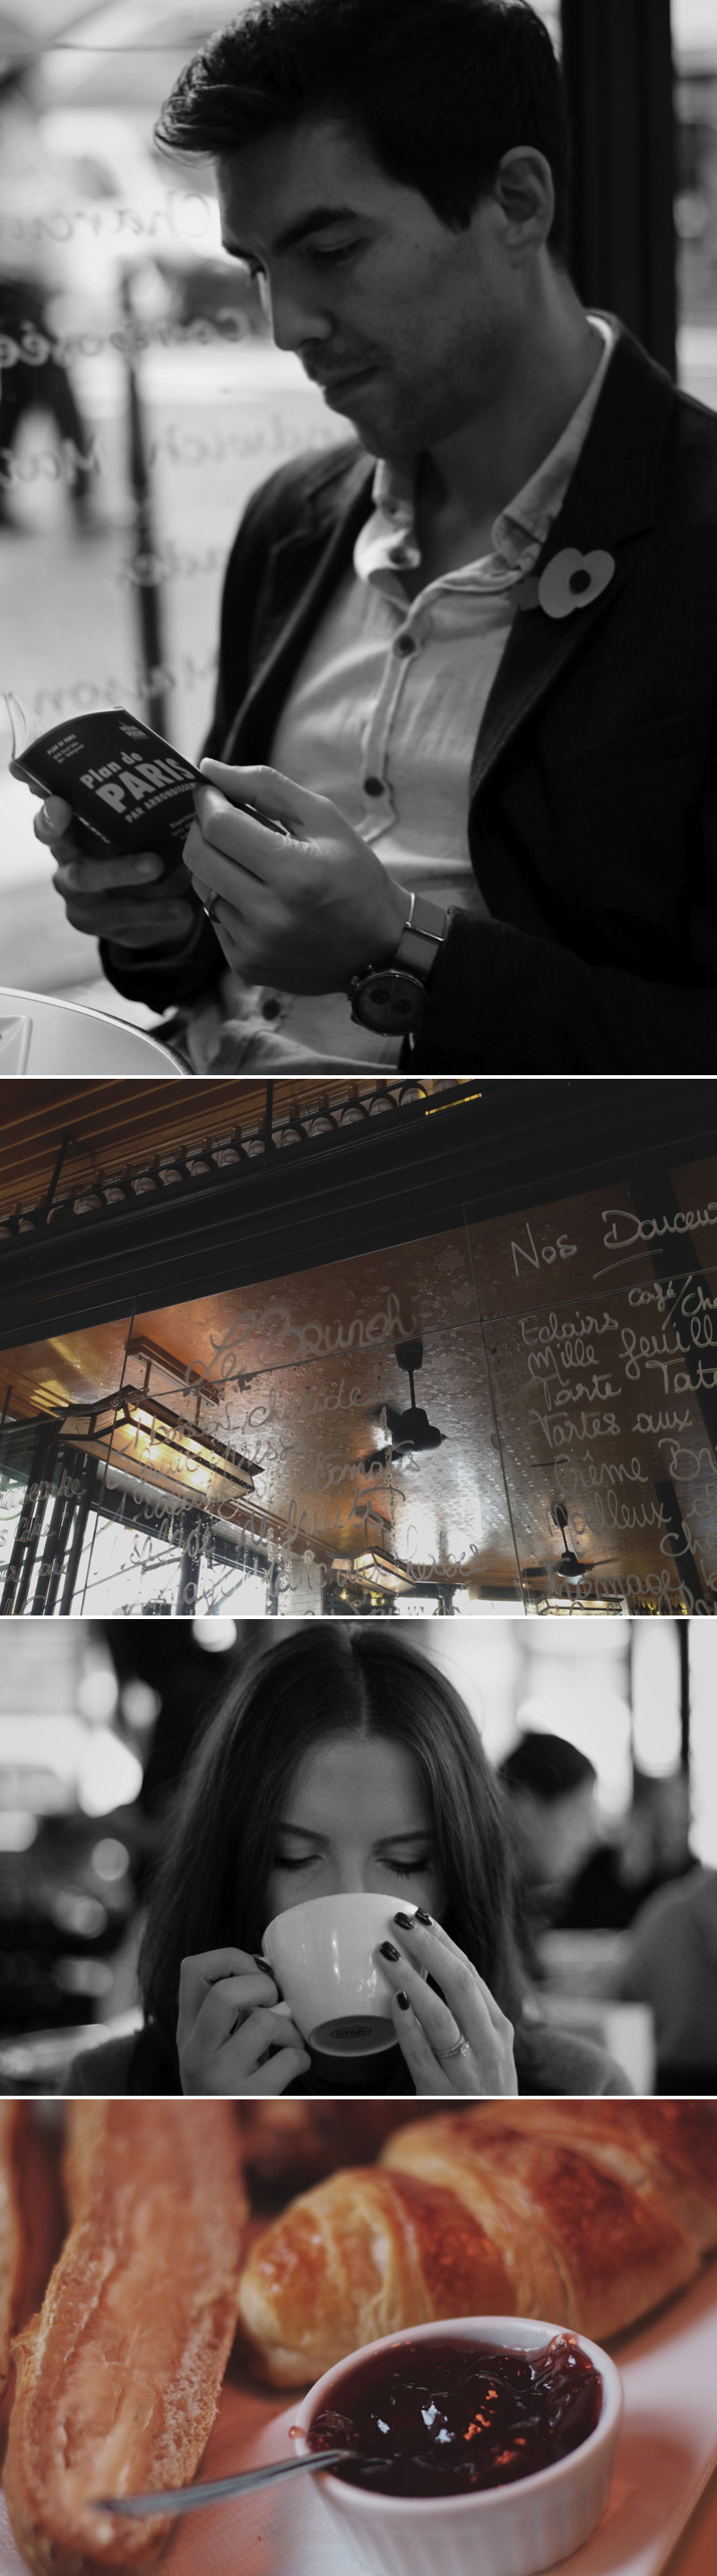 Coco Wedding Venues - Paris in the Autumn - Cafe.